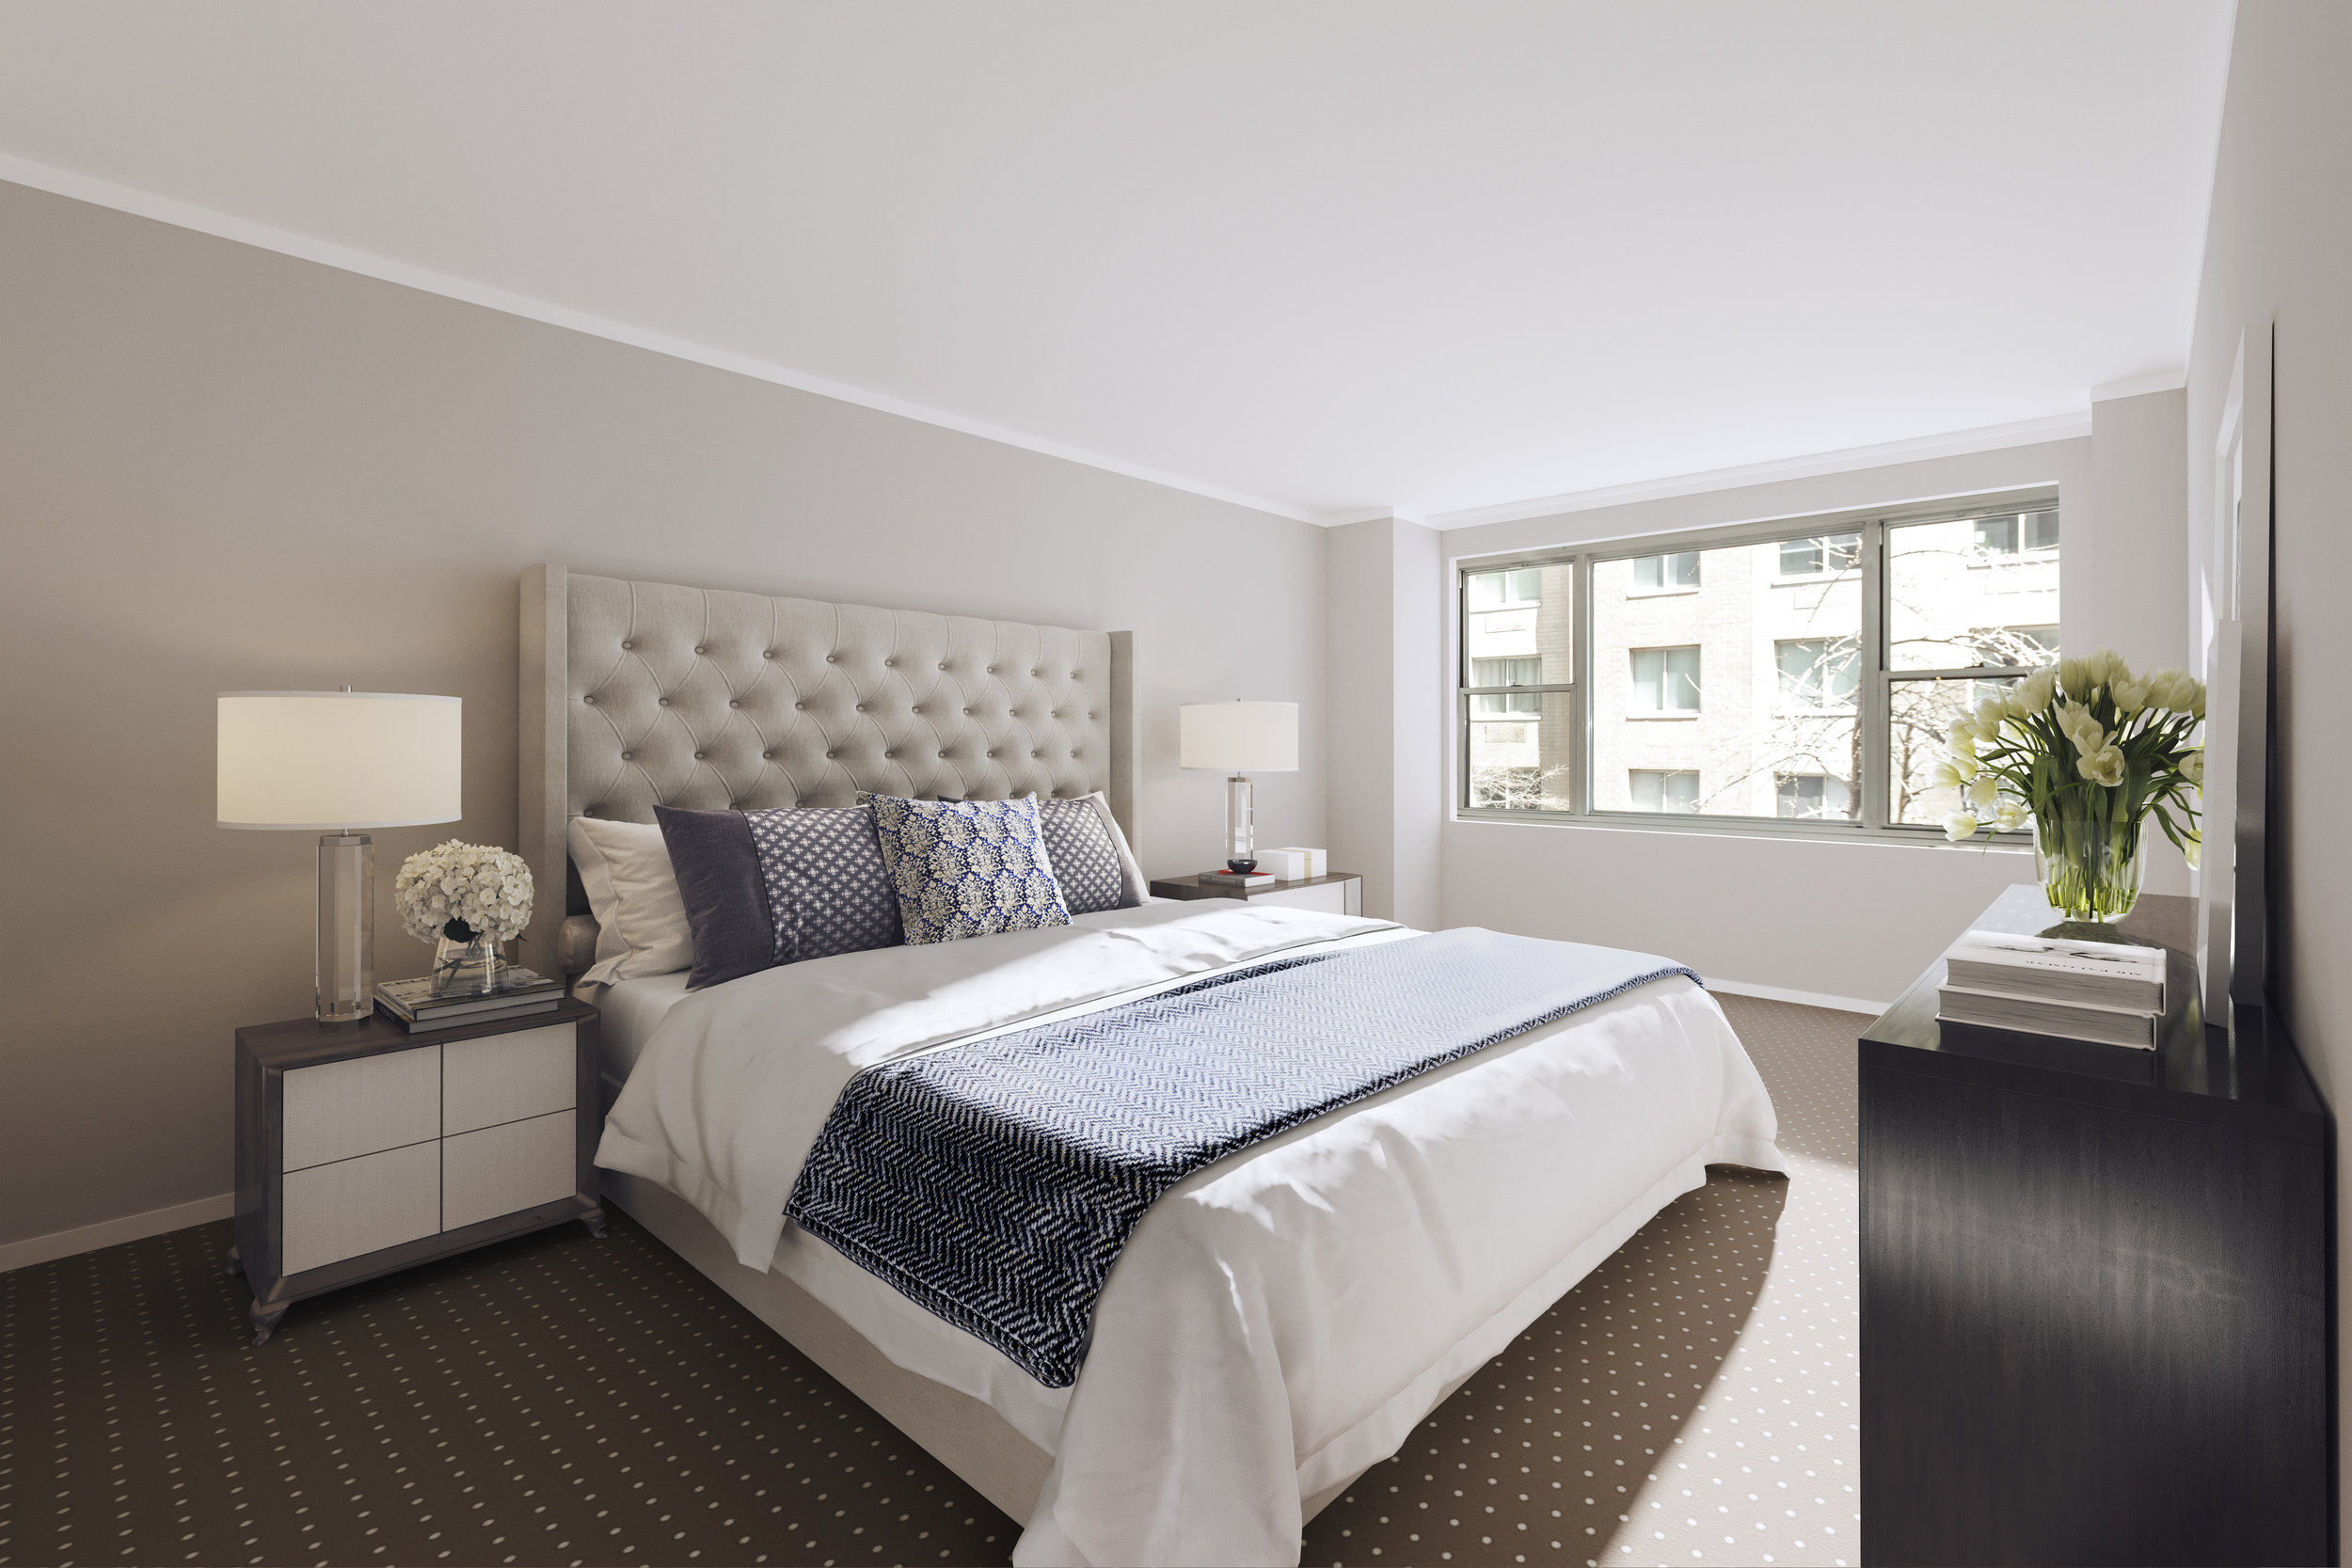 Andrew_340 East 64th St_Master_Bedroom_staged_сorrected_AN.jpg